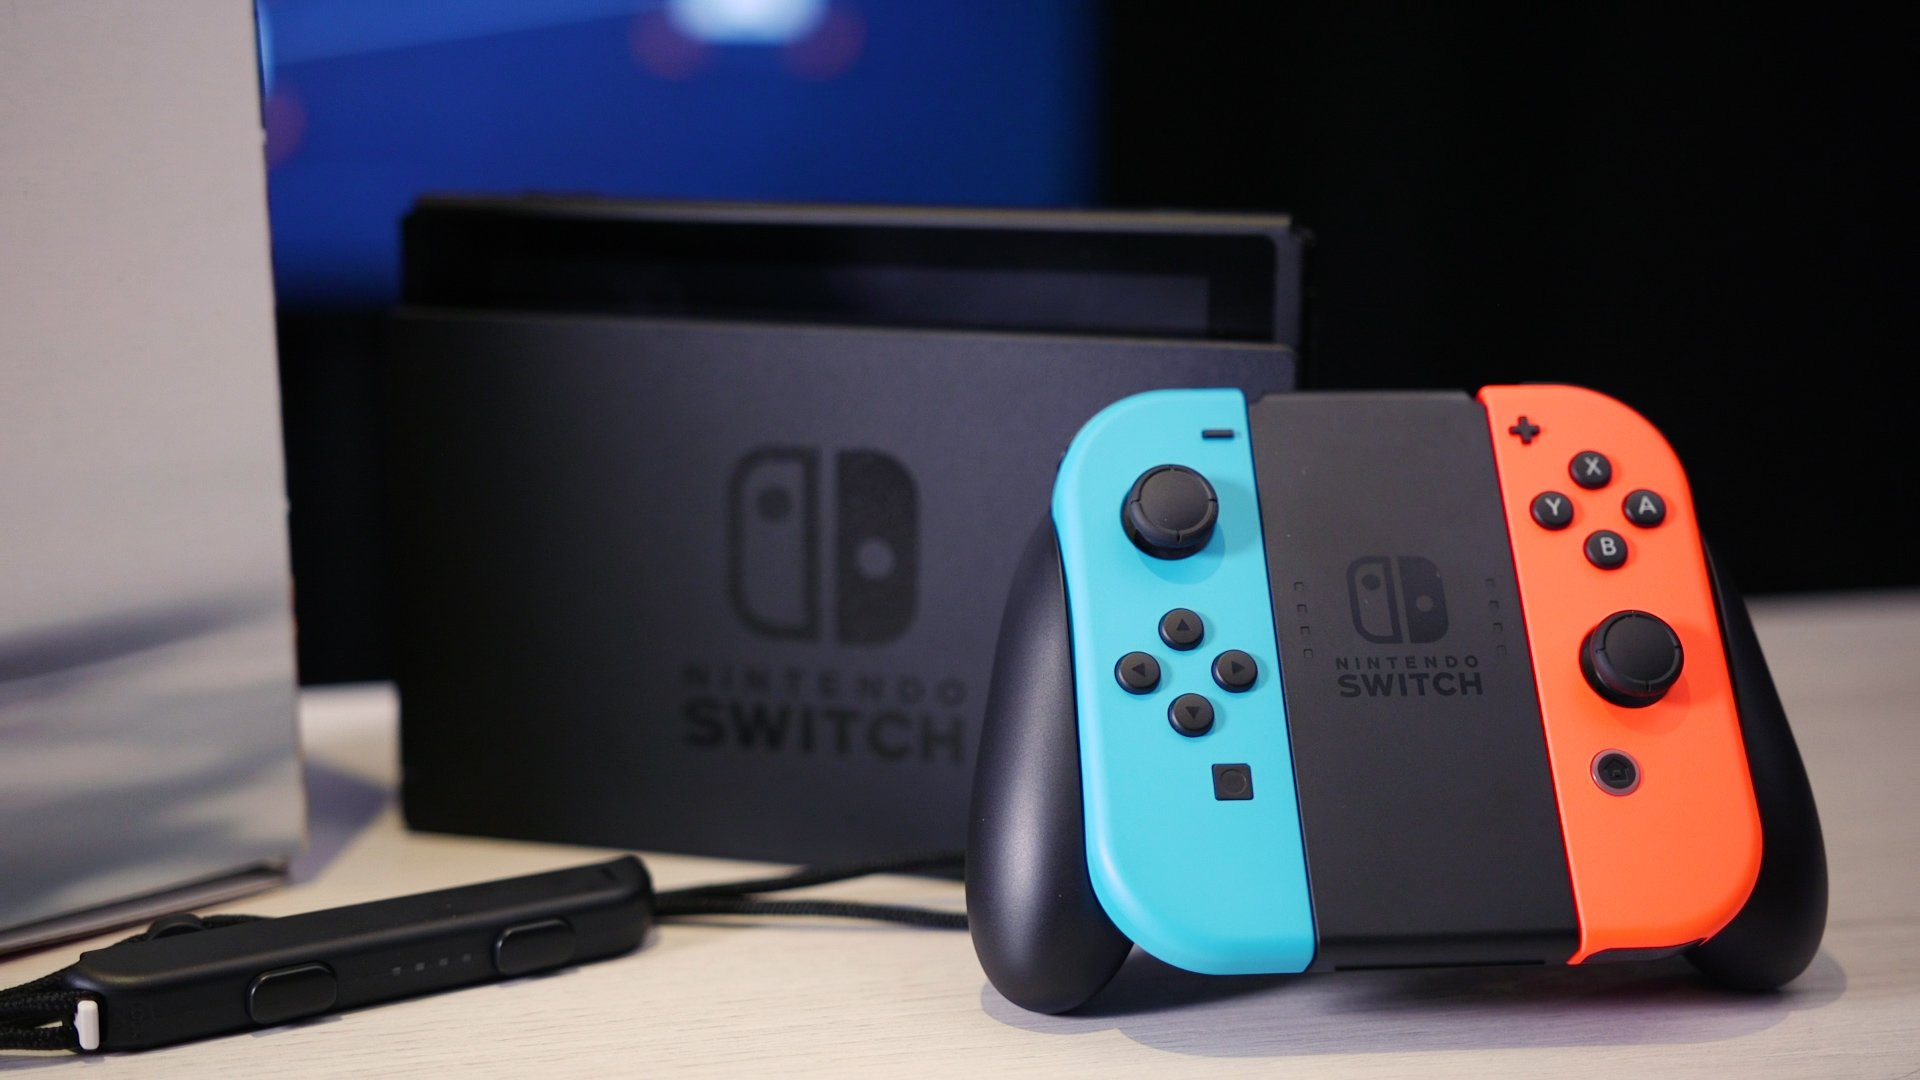 Modojo | Has The Nintendo Switch Finally Been Hacked?